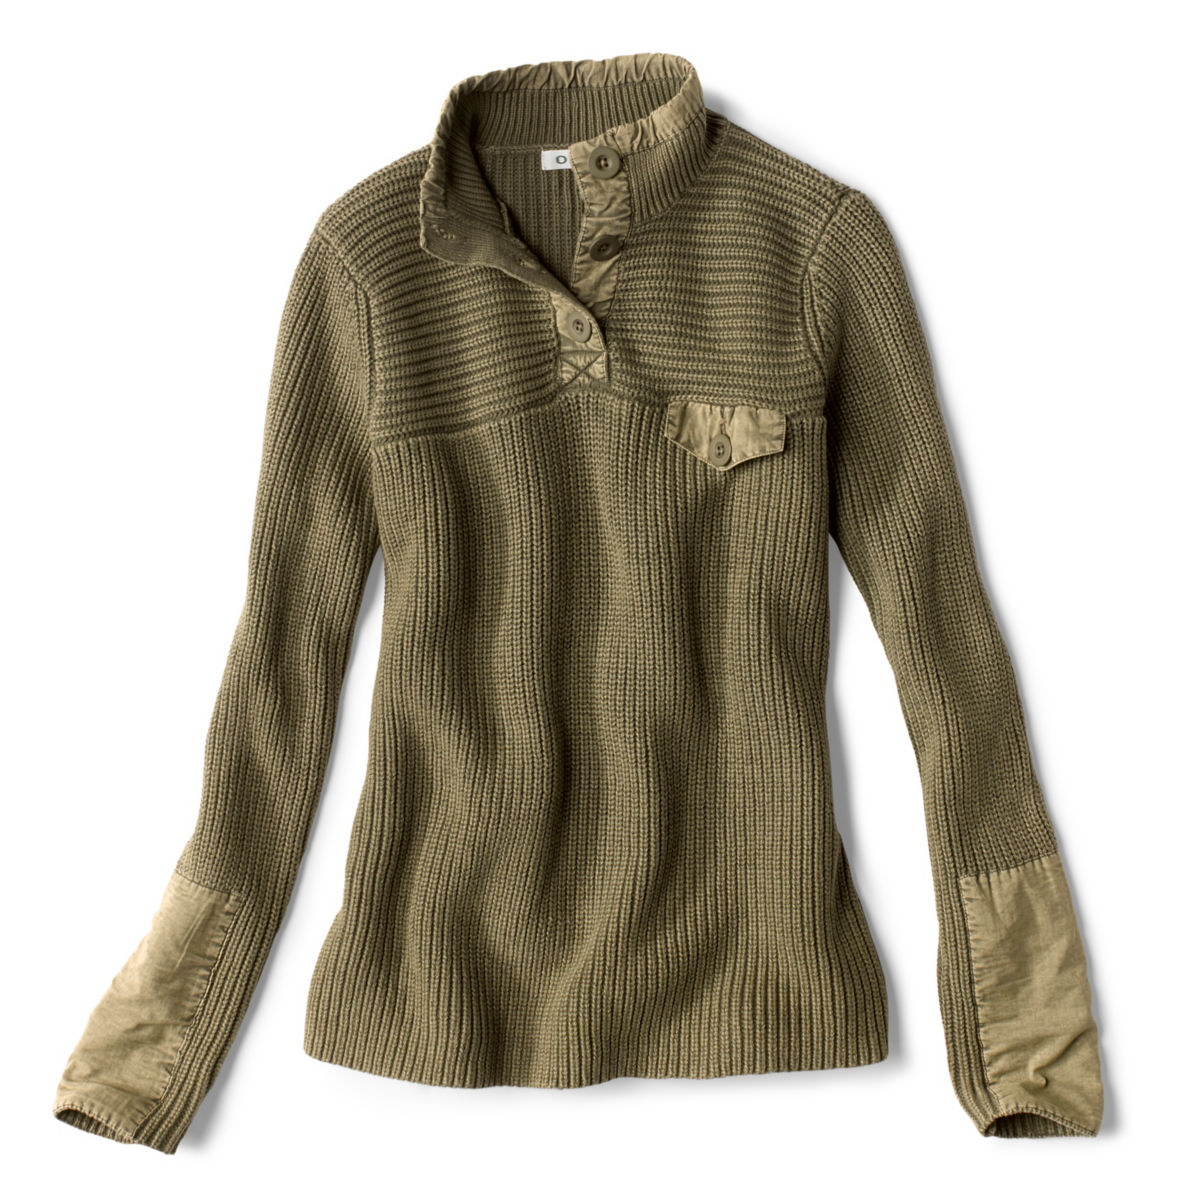 Mixed Media Quarter-Button Sweater - LODENimage number 0